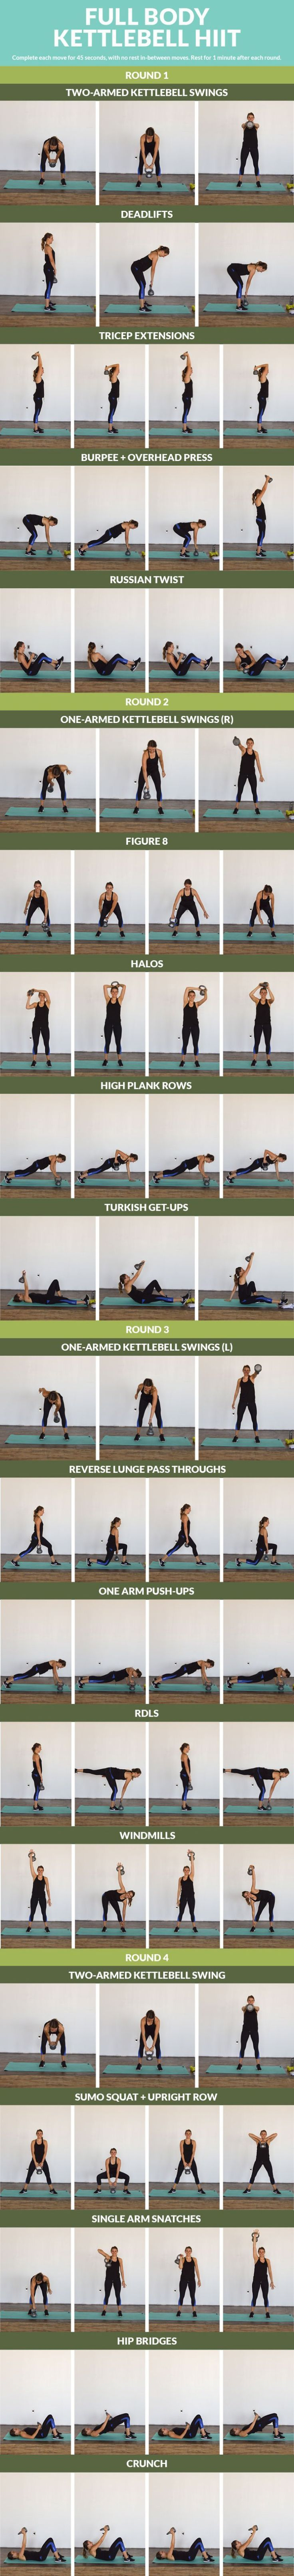 Wont six-pack Abs, gain muscle or weight loss, this workout plan is great for women. with FREE WEEKENDS and No-Gym or equipment ! #WeightLossforWomen